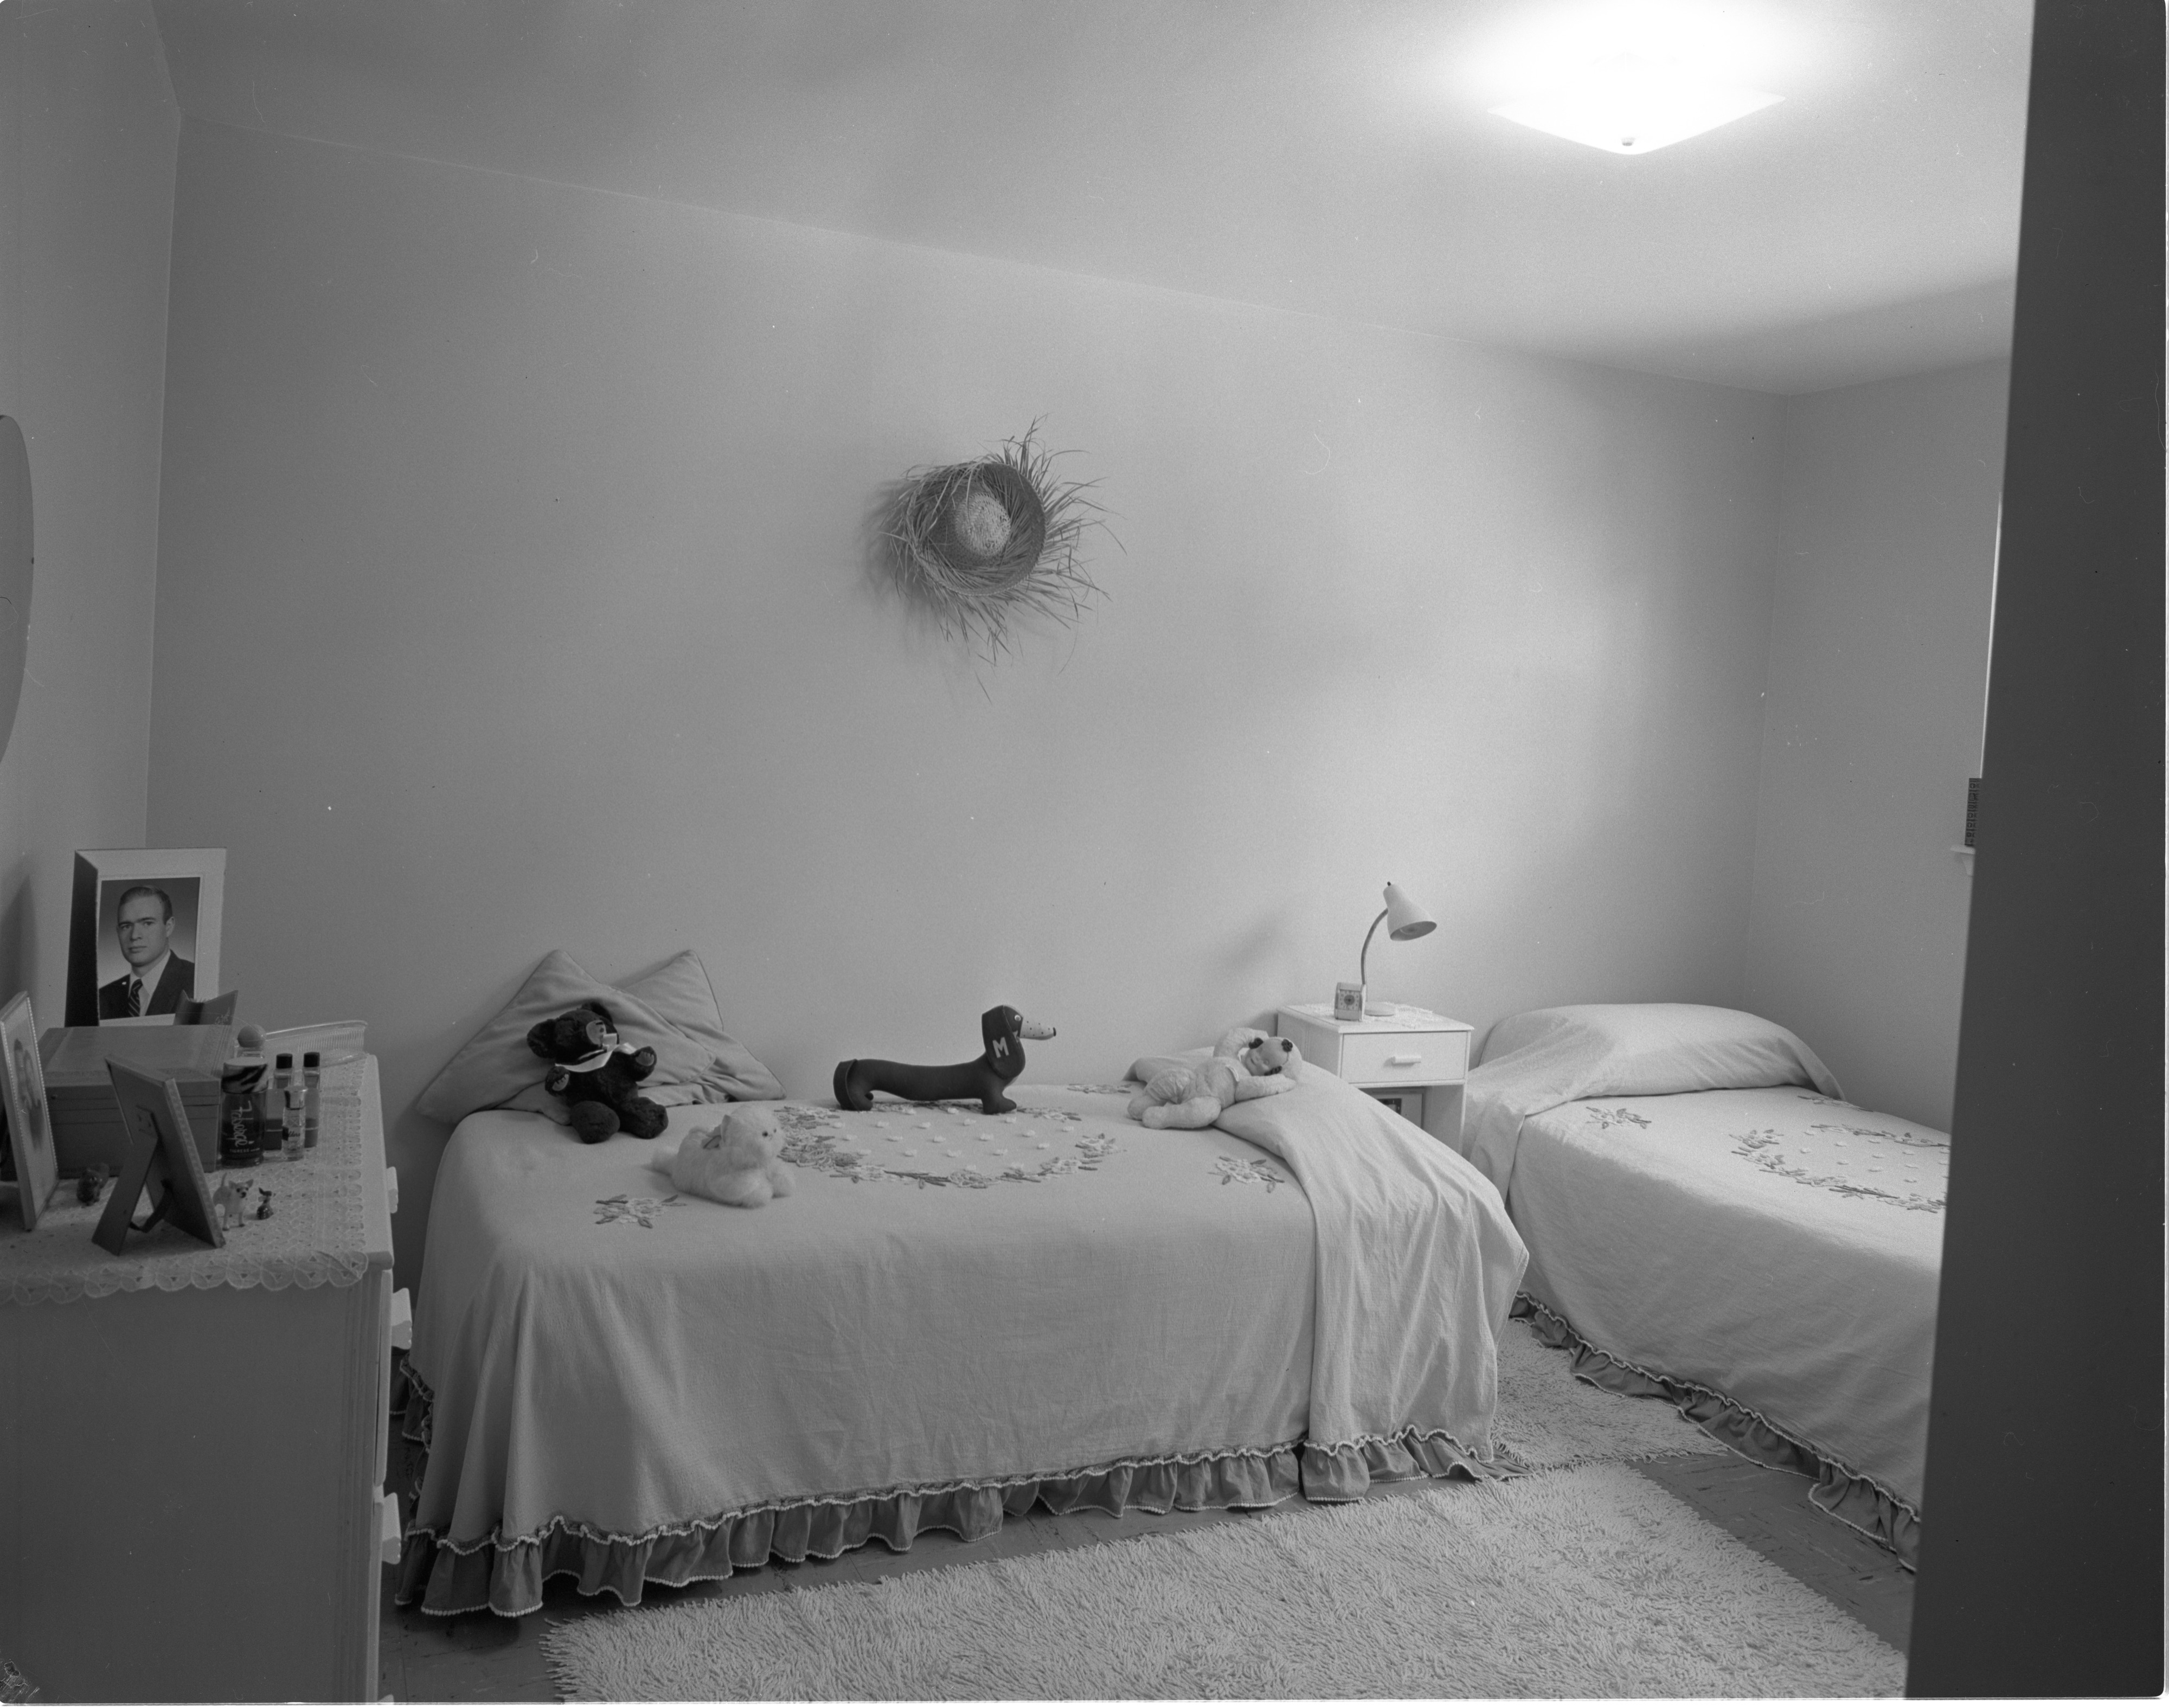 Newly Constructed Huron Arms Apartments - Bedroom, September 1956 image